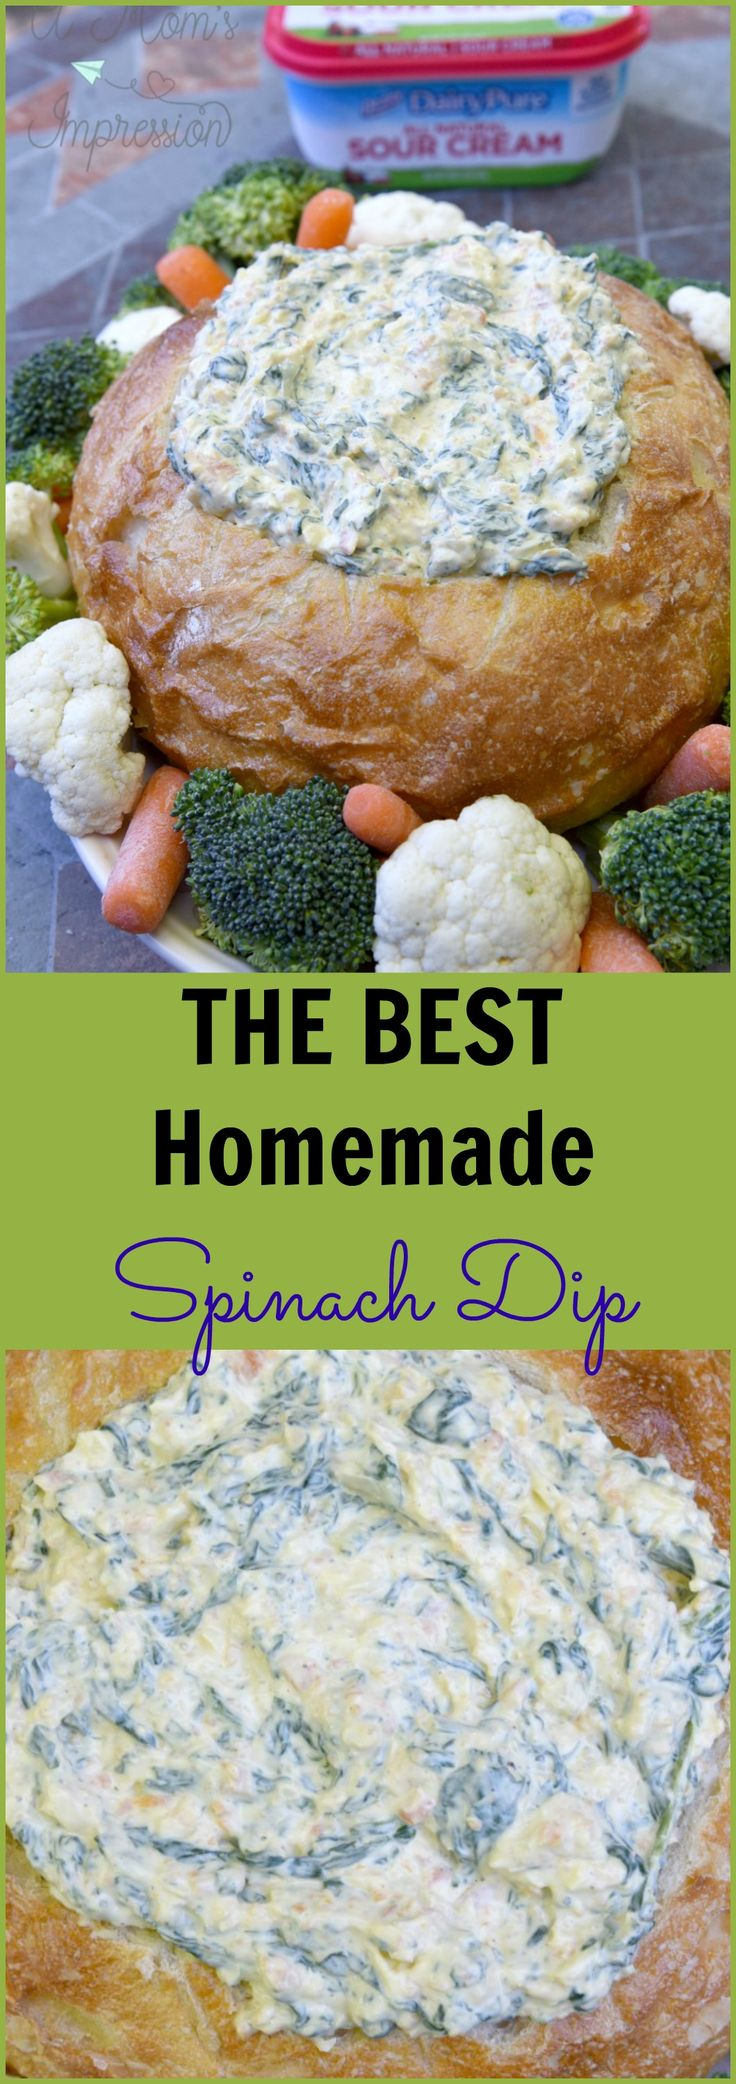 This Homemade Spinach Dip recipe uses fresh spinach and vegetables to make it stand out from the rest. You won't believe how much better it tastes when using fresh ingredients and its quick and easy to make.